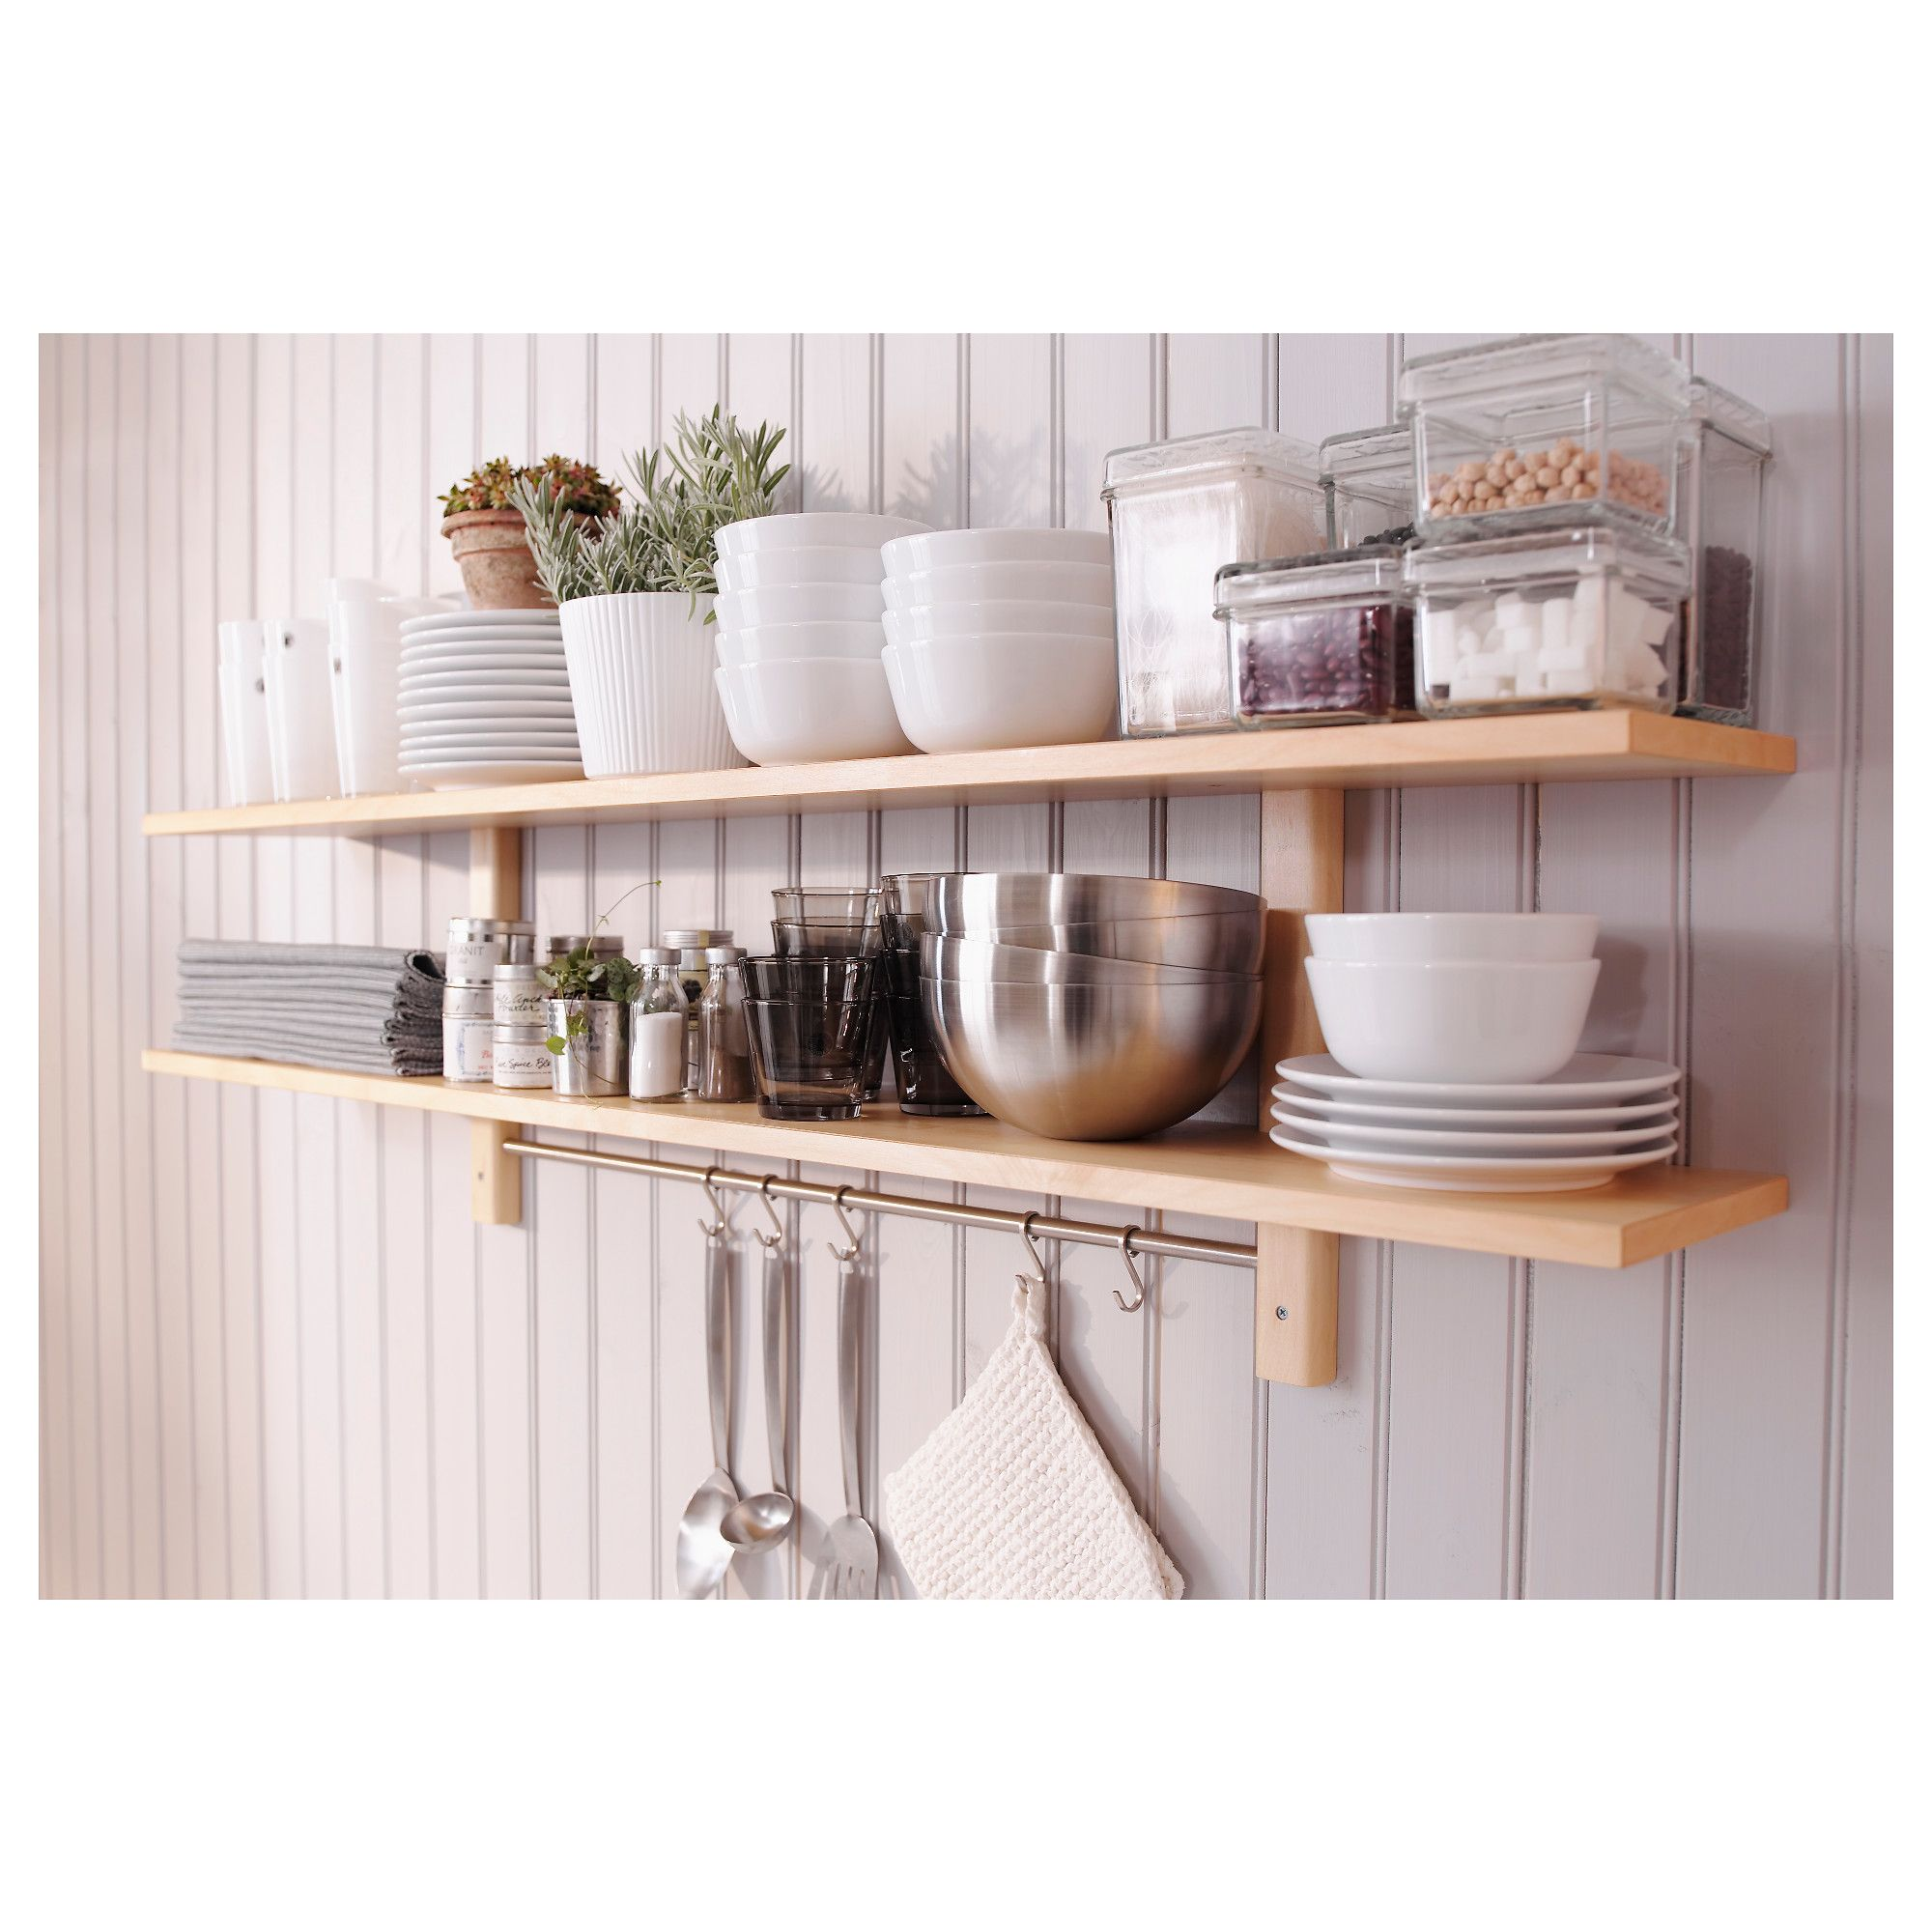 Ikea Värde Küchenregal VÄrde Wall Shelf With 5 Hooks Birch 140 X 50 Cm In 2019